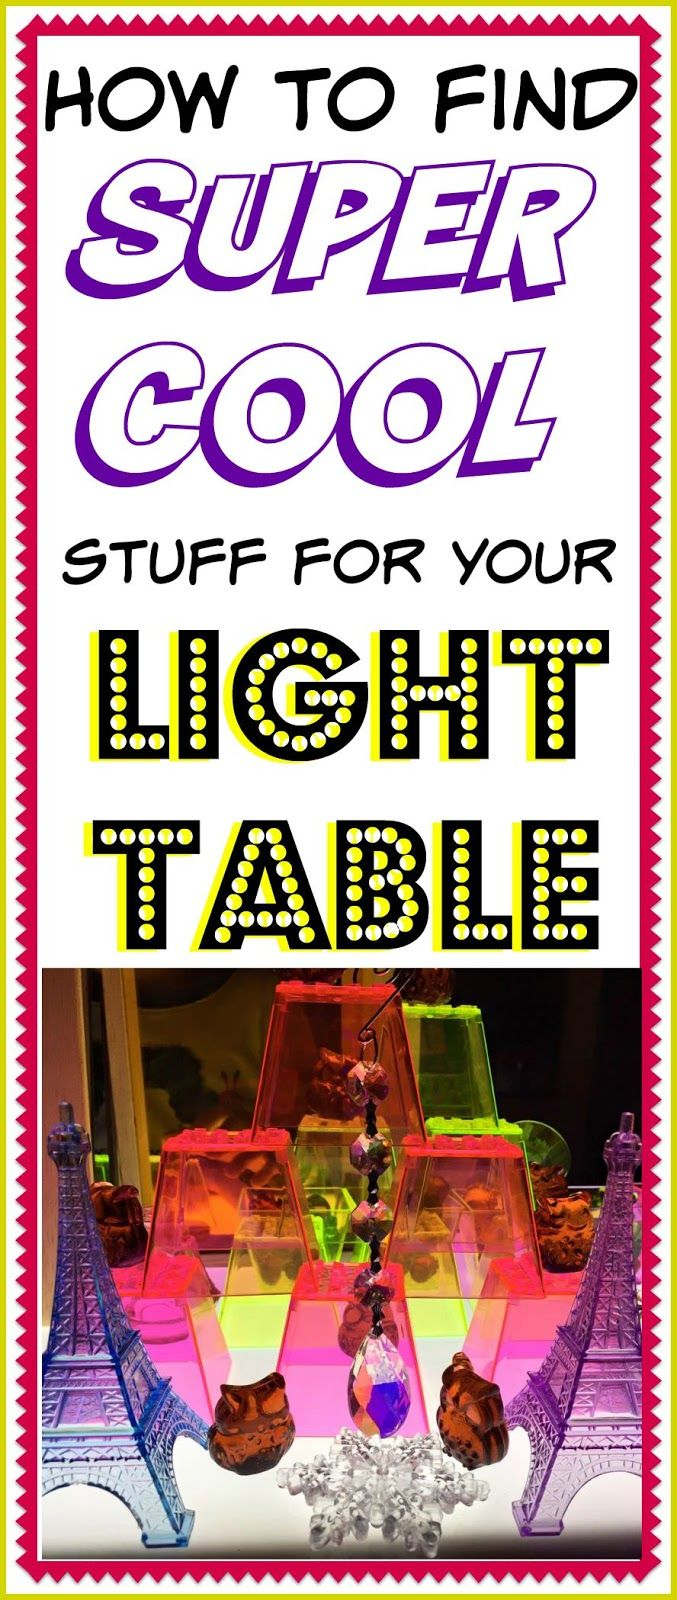 How to find SUPER COOL stuff for your Light table! Insider secrets from an expert!